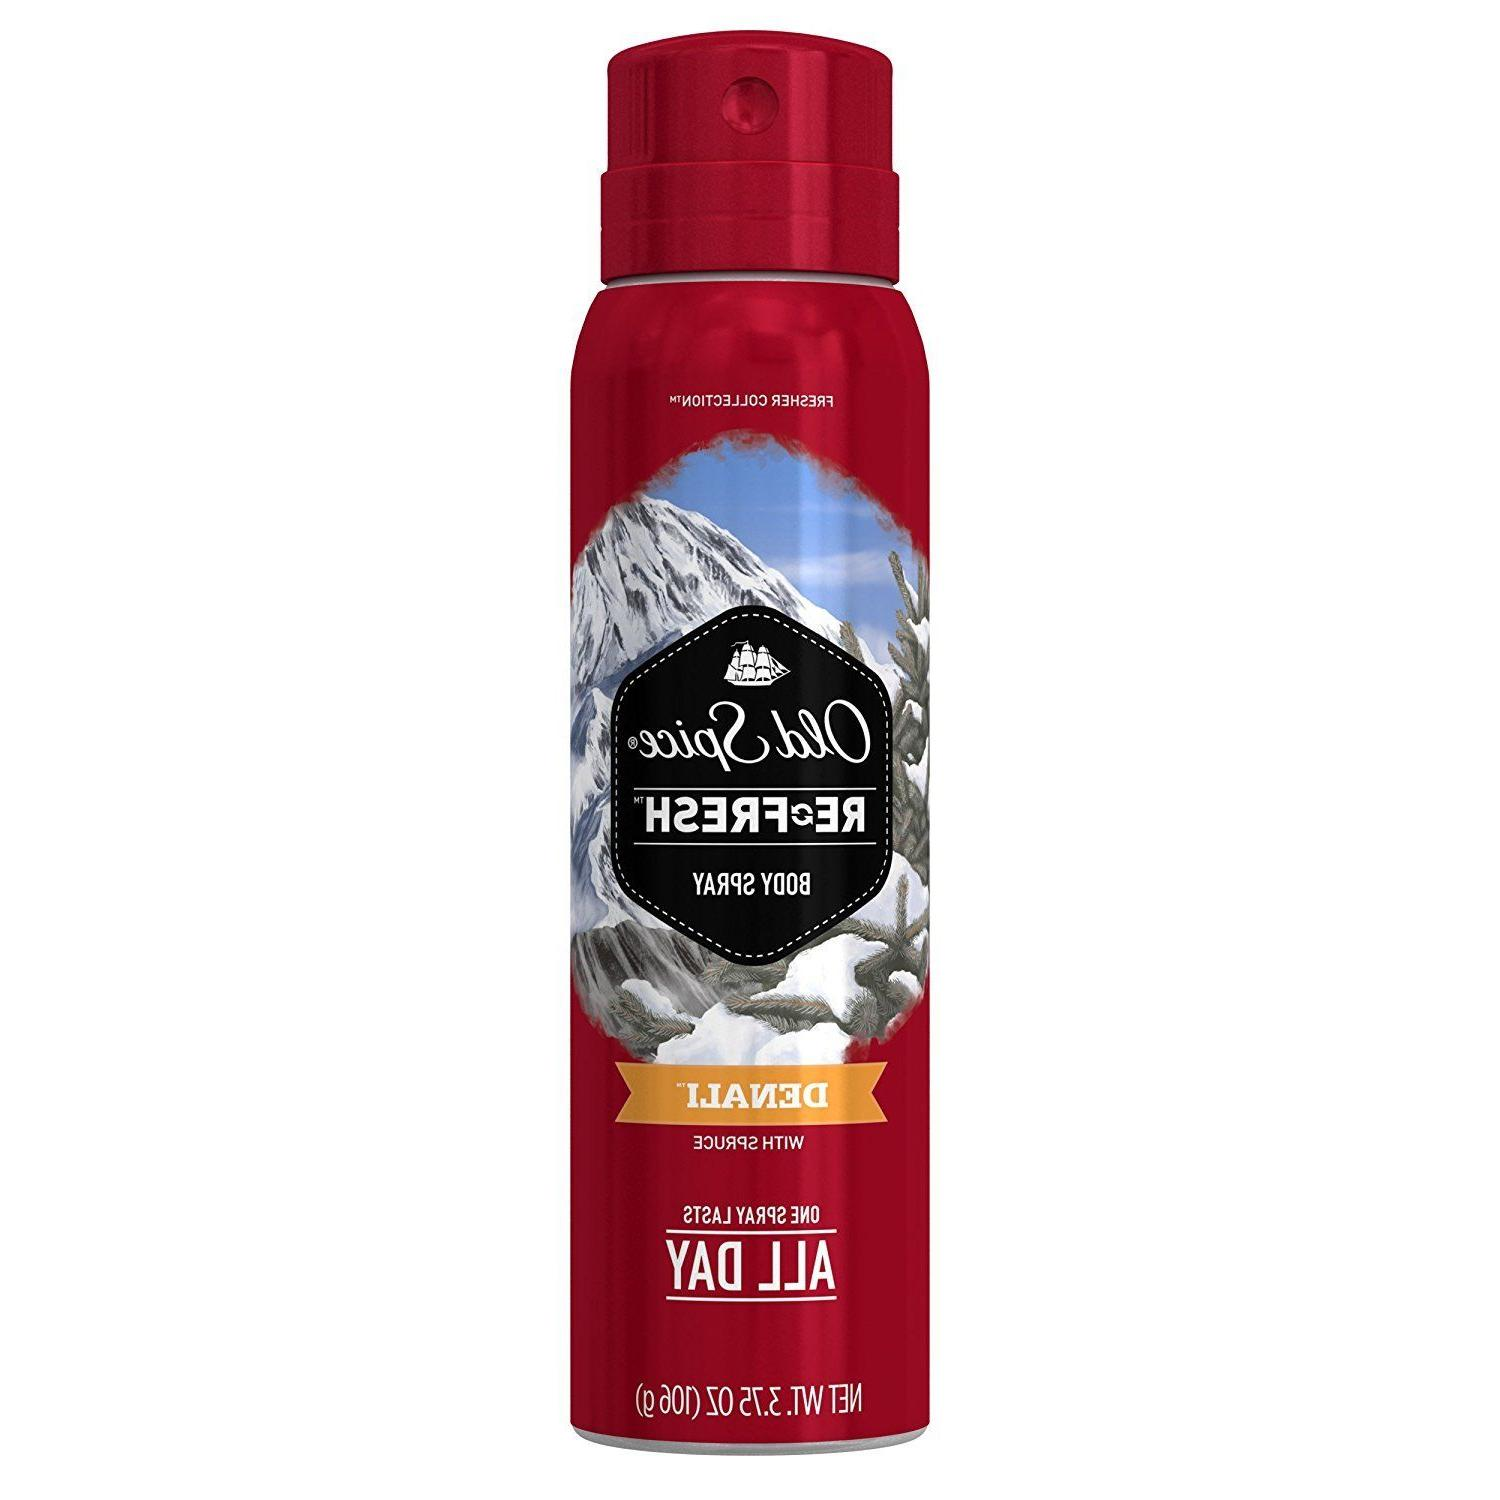 Old Spice Refresh Fresher Collection Body Spray 3.75 oz Dena